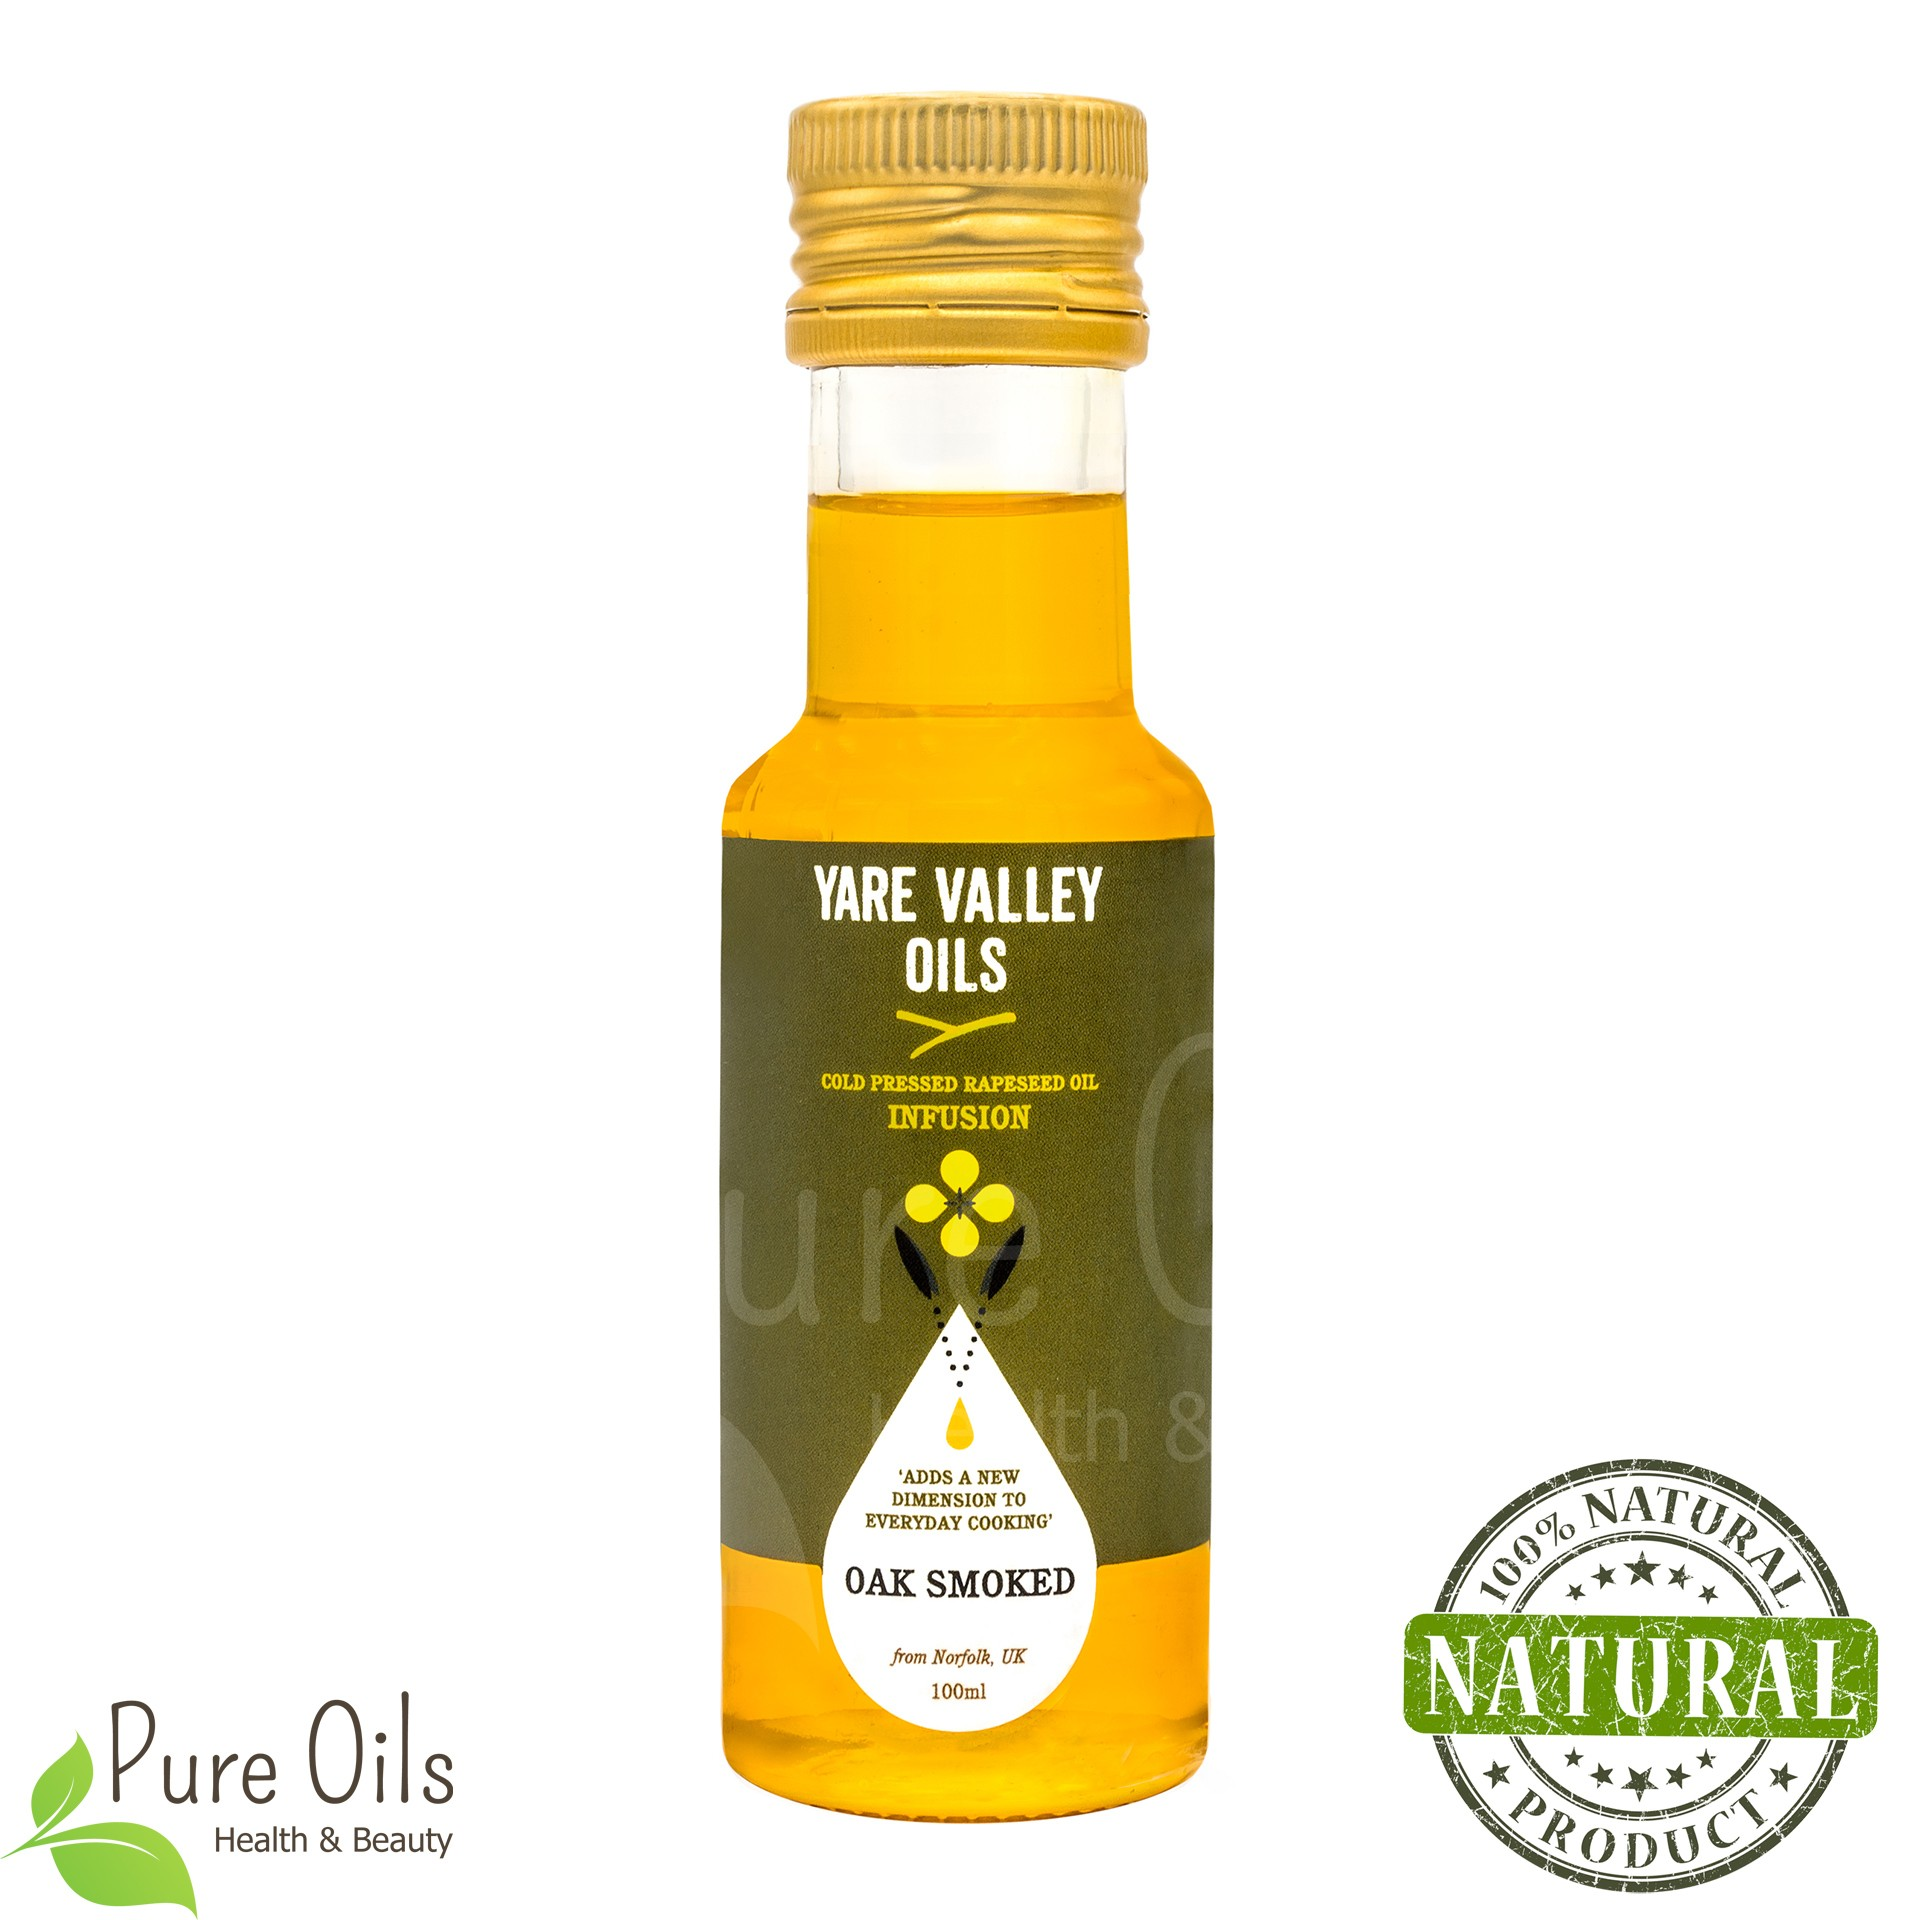 Oak Smoked Rapeseed Oil, Cold Pressed, Yare Valley